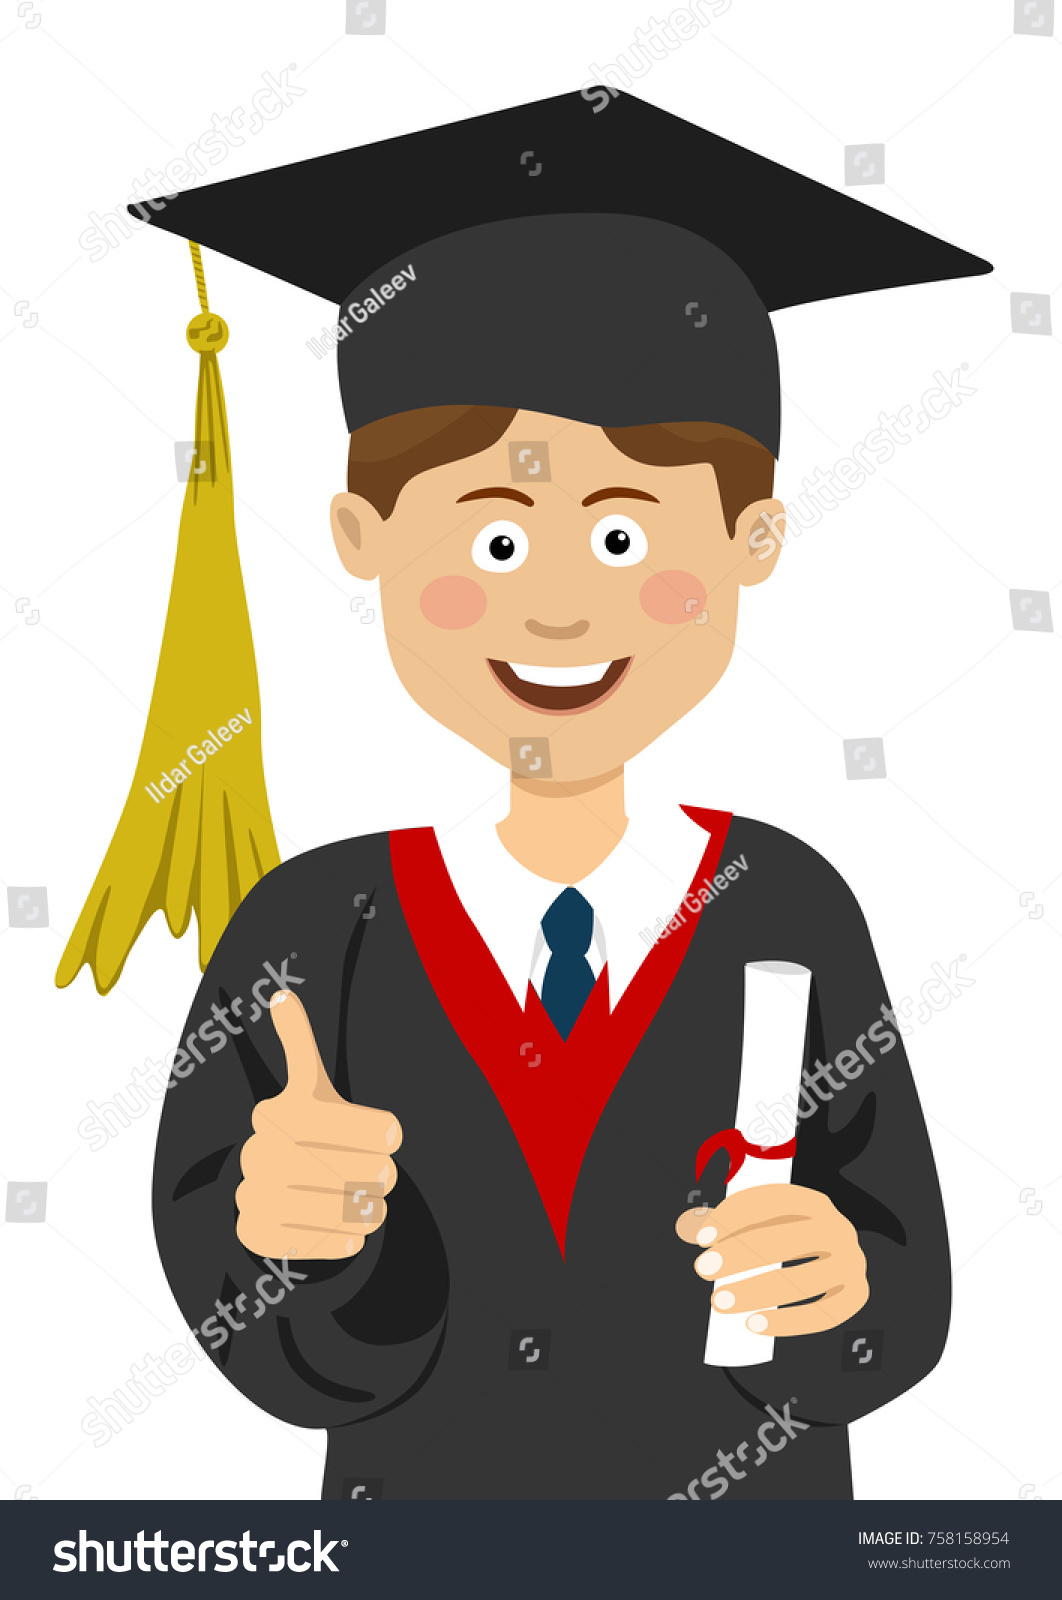 young boy graduate student graduation cap stock vector  young boy graduate student in a graduation cap and mantle a university diploma in his